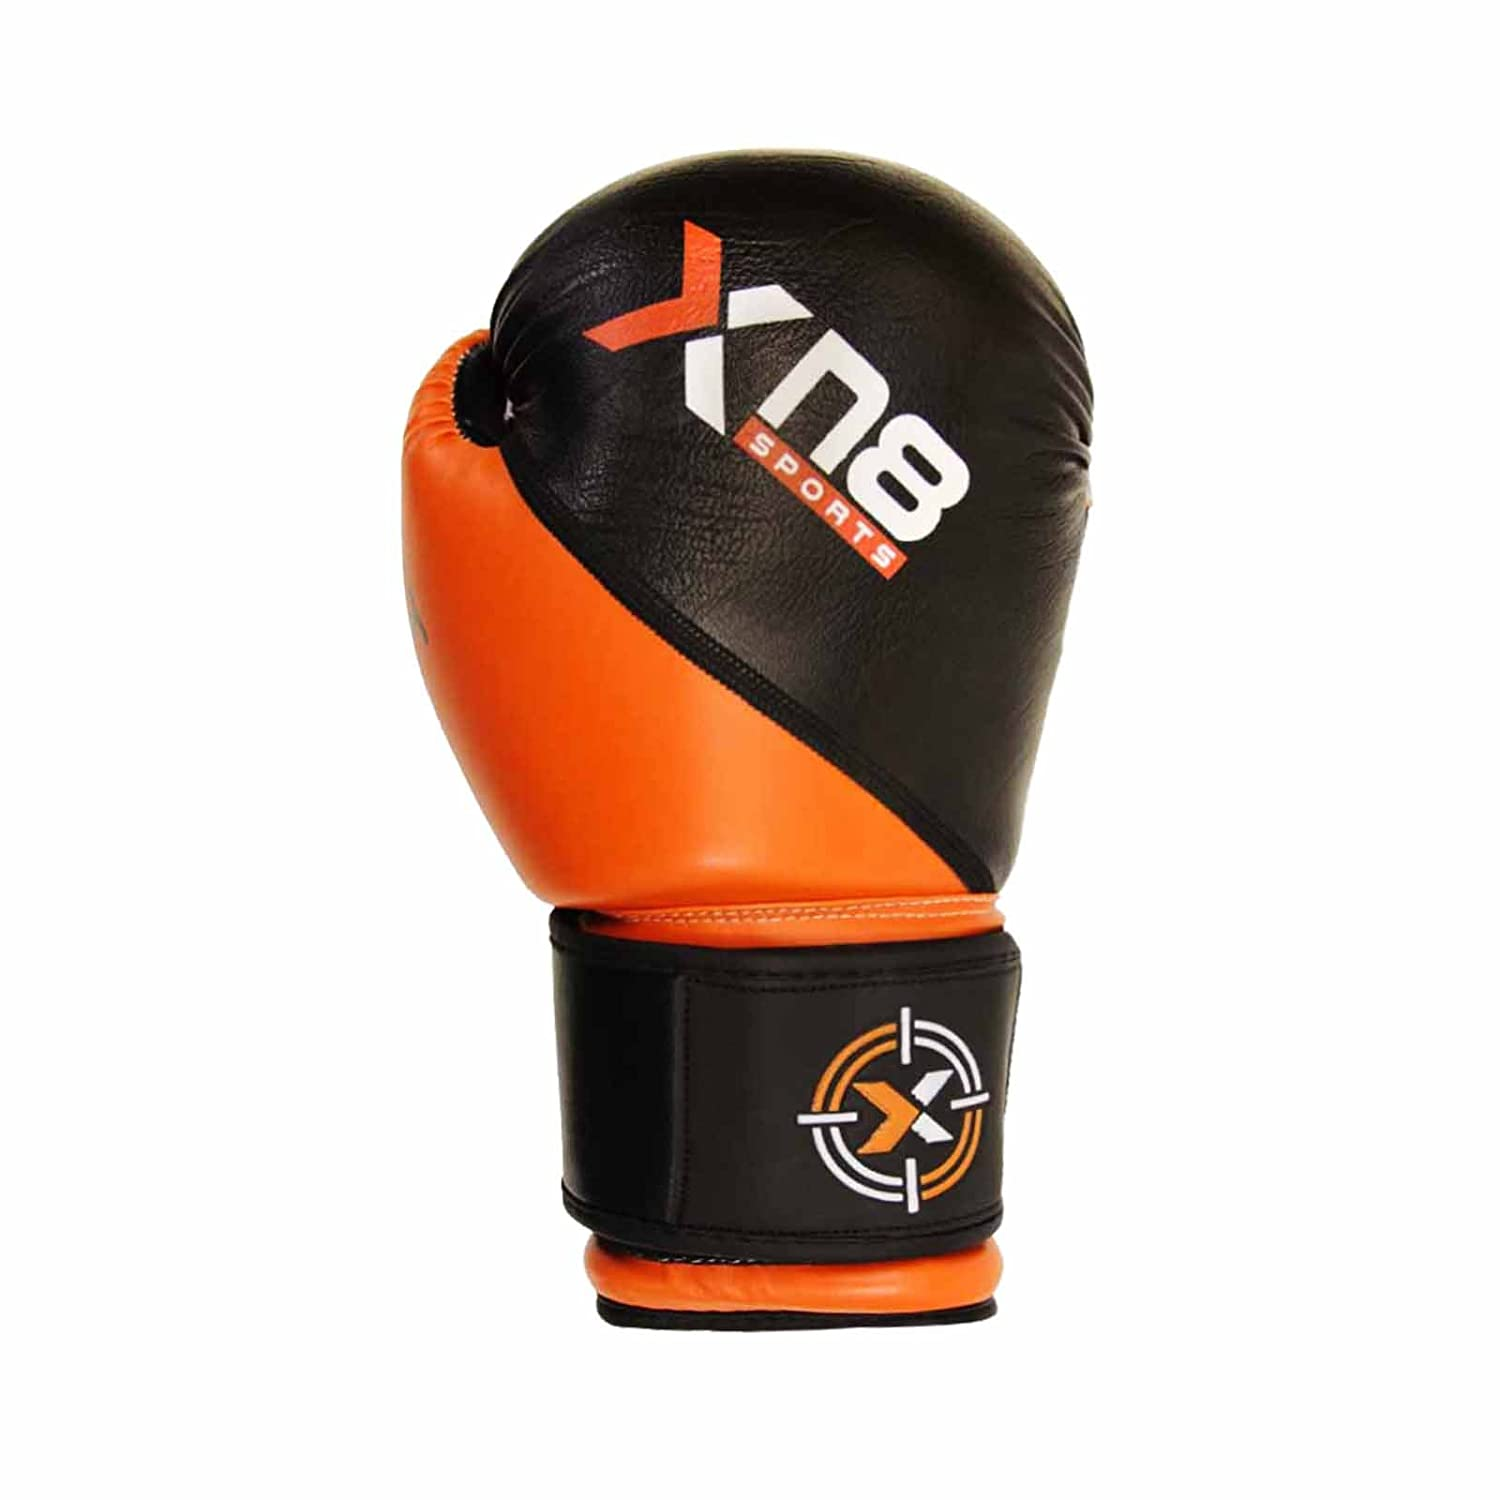 Xn8 Sports Moti Hide Leather Boxing Gloves MMA Muay Thai Punch Bag Sparring Fight Pad Kickboxing Martial Arts Training Gloves